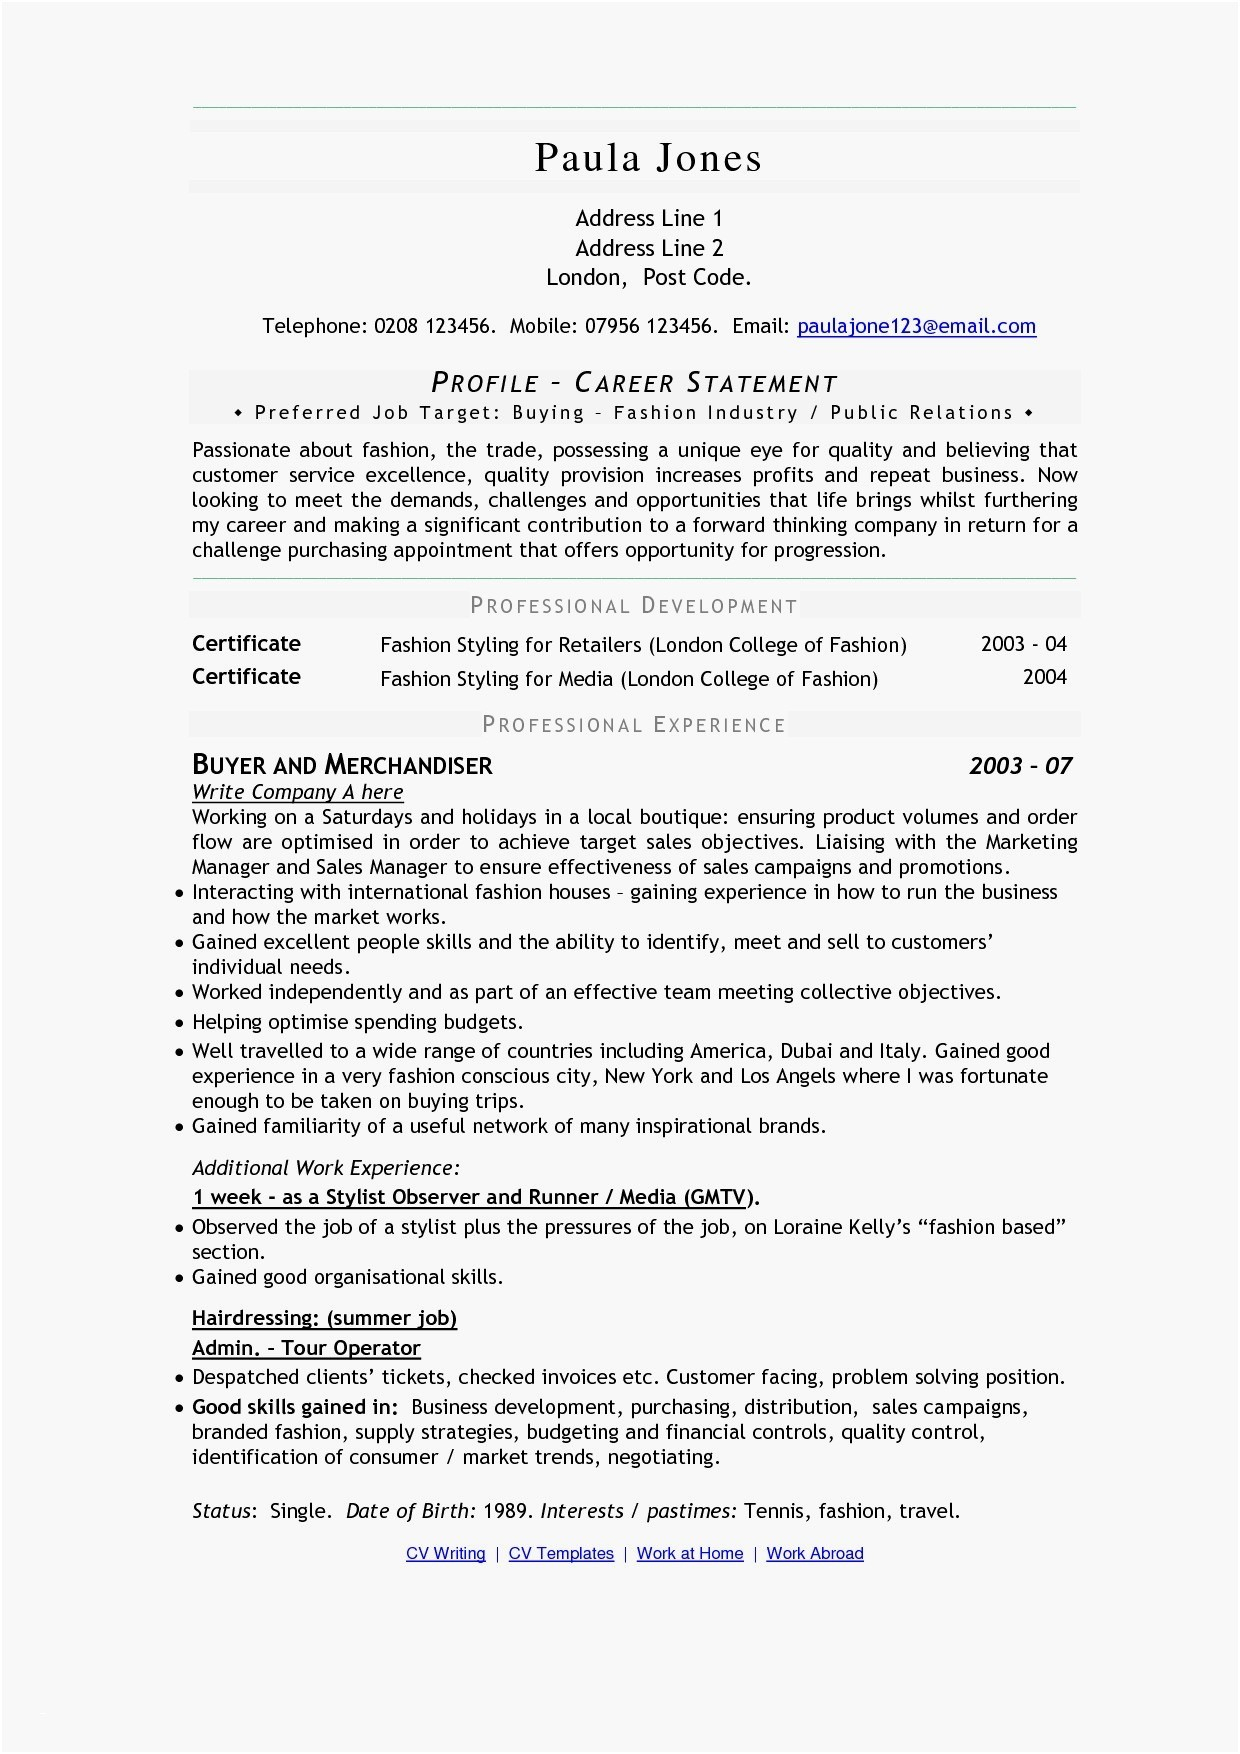 Resume Writing Companies - Writing Skills Resume Lovely Resume Writing Services Aggiegeeks